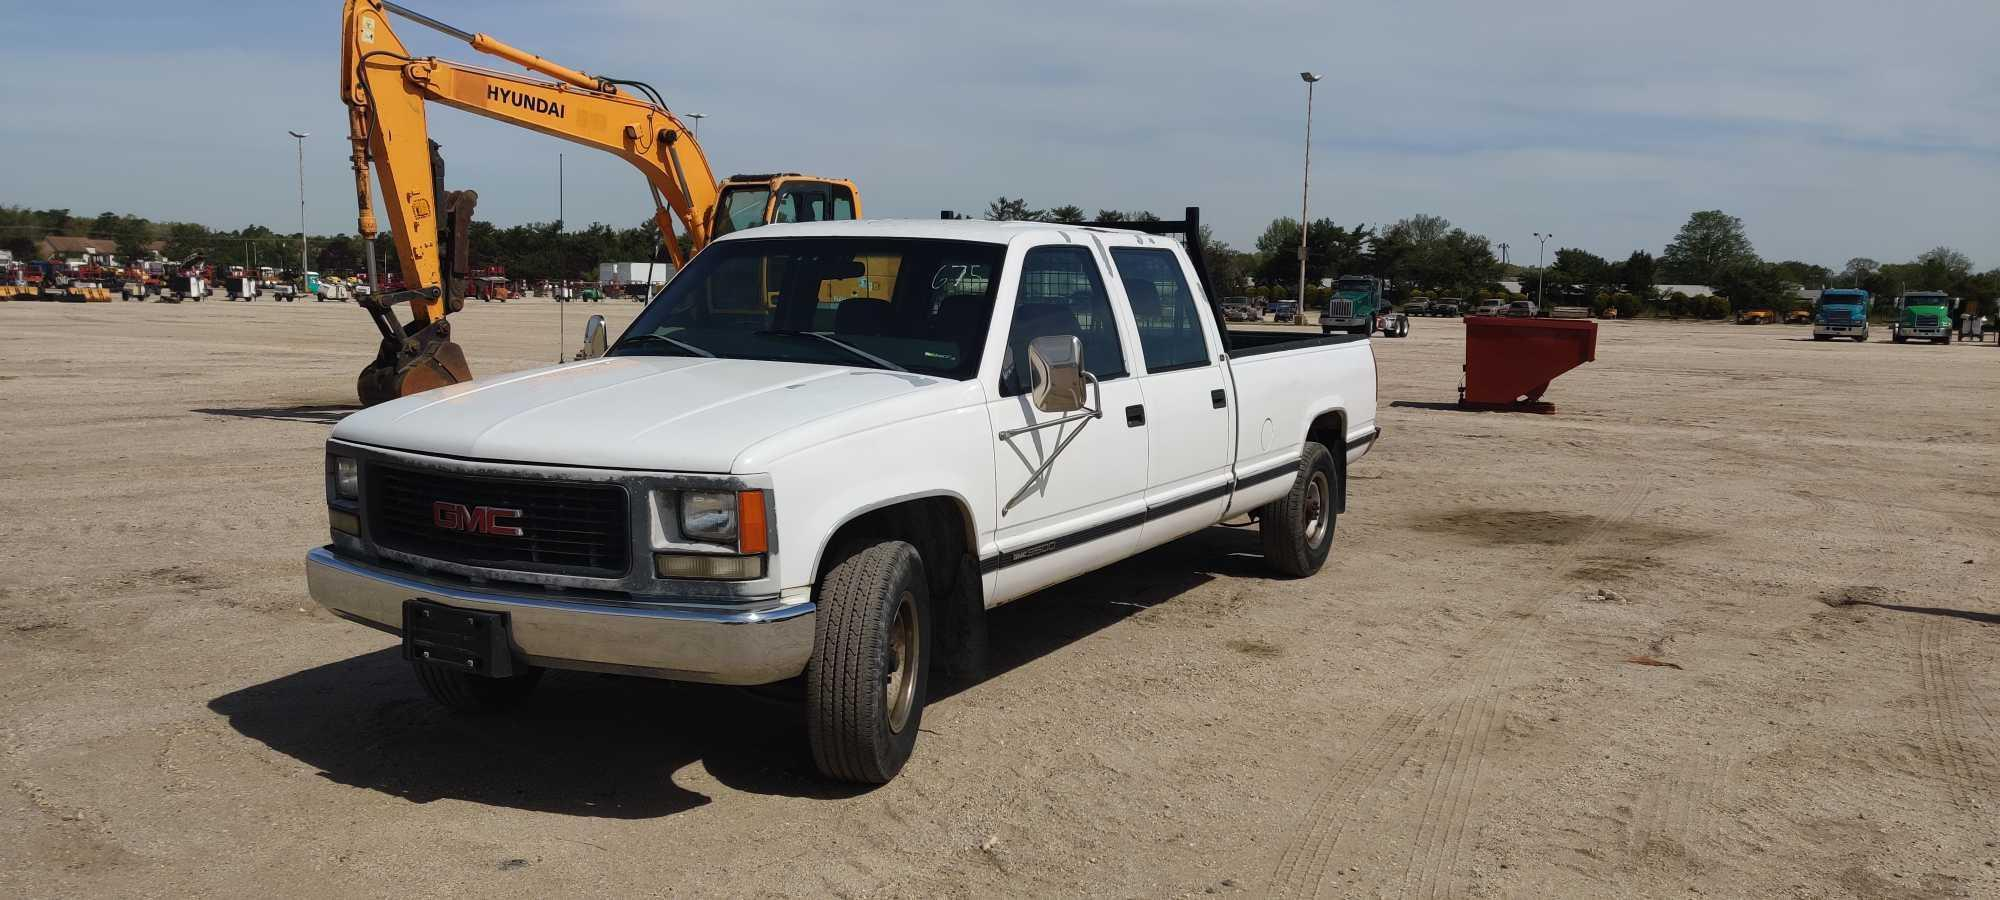 1998 GMC 3500 PICKUP TRUCK VN:F013480 Powered By 5.7L